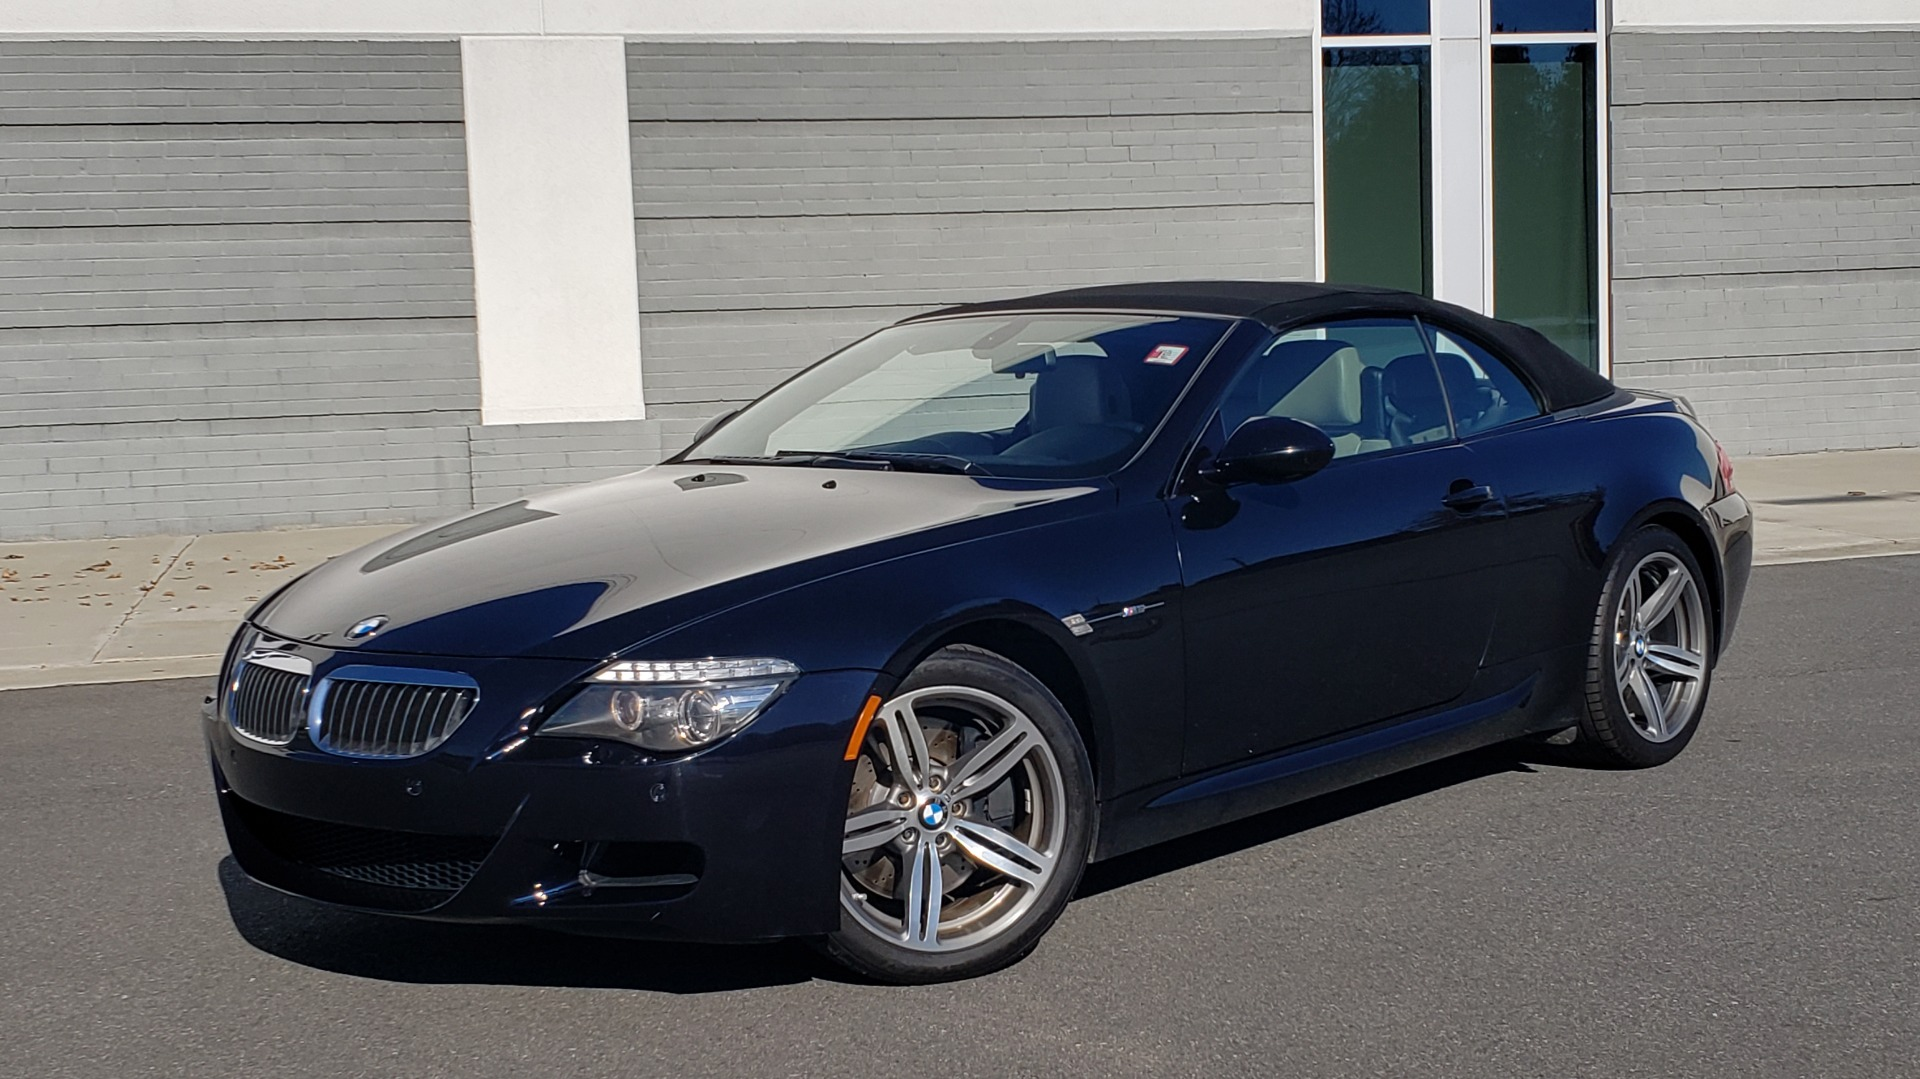 Used 2009 BMW M6 CONVERTIBLE / 5.0L V10 (500HP) / PREM SND / HUD / 19IN WHEELS for sale $24,999 at Formula Imports in Charlotte NC 28227 3